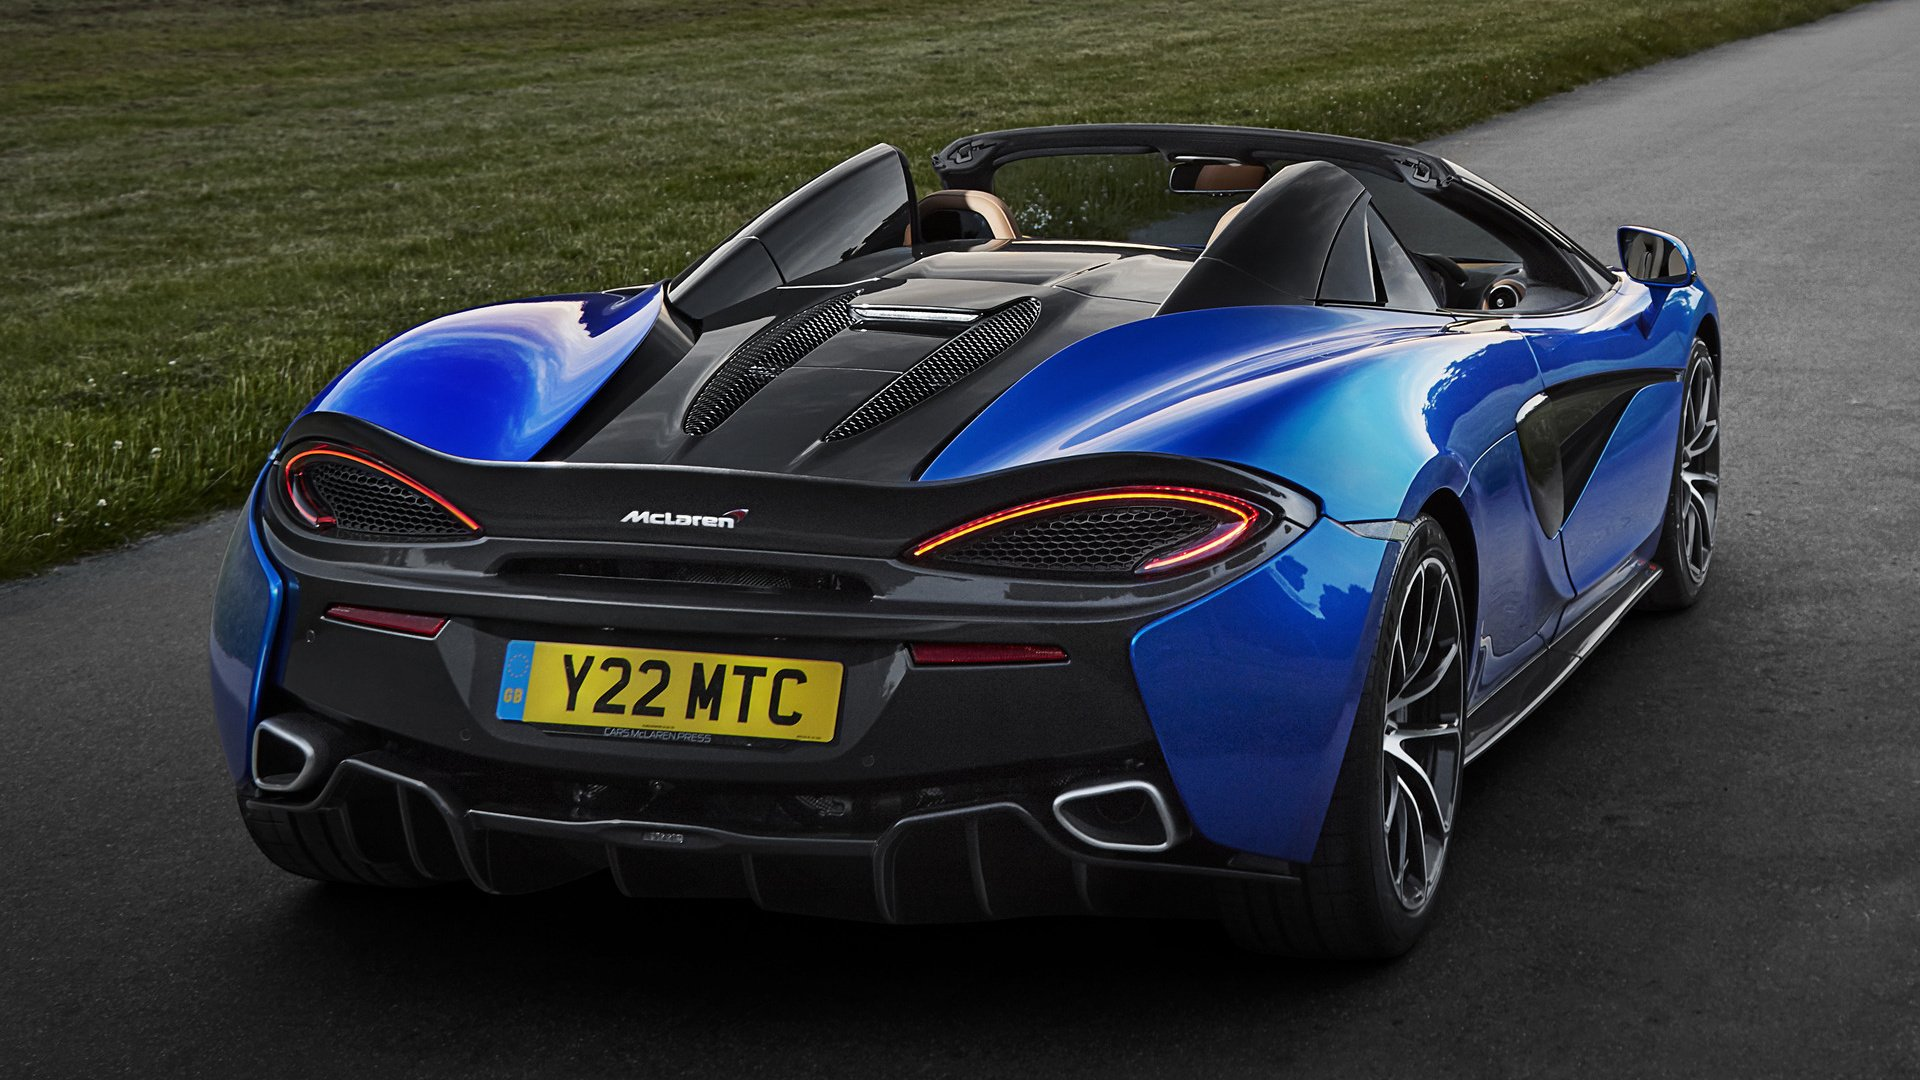 Vehicles - McLaren 570S Spider  Sport Car Supercar Blue Car Car Wallpaper